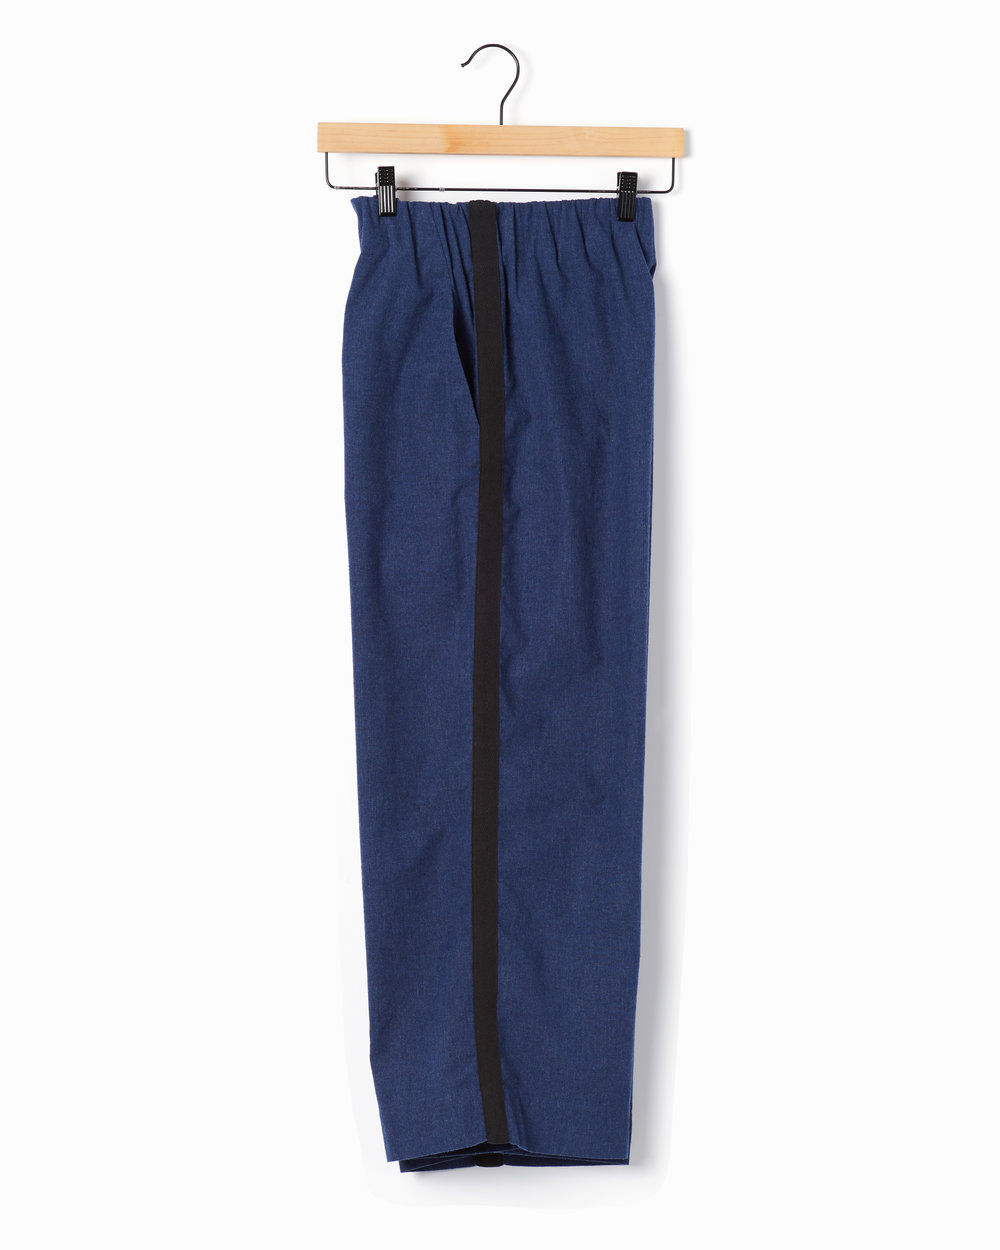 French_Italian_M_Patmos_Else_Pant_Indigo_Black_Trim_03.jpg